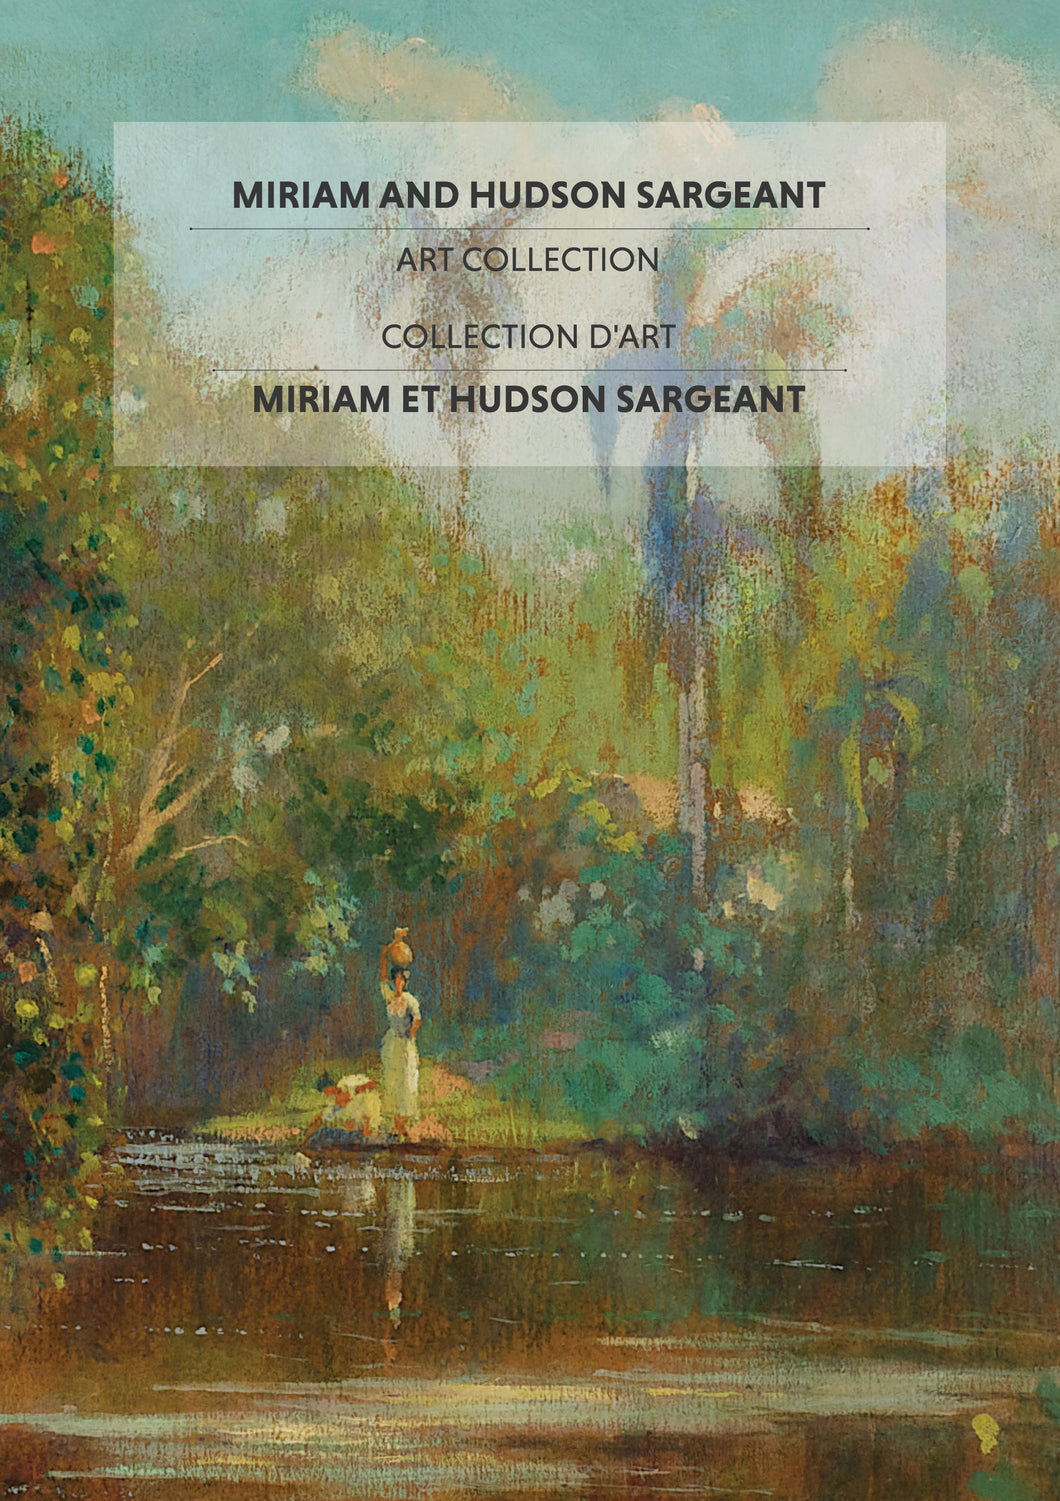 Miriam and Hudson Sargeant Art Collection / Collection d'art Miriam et Hudson Sargeant